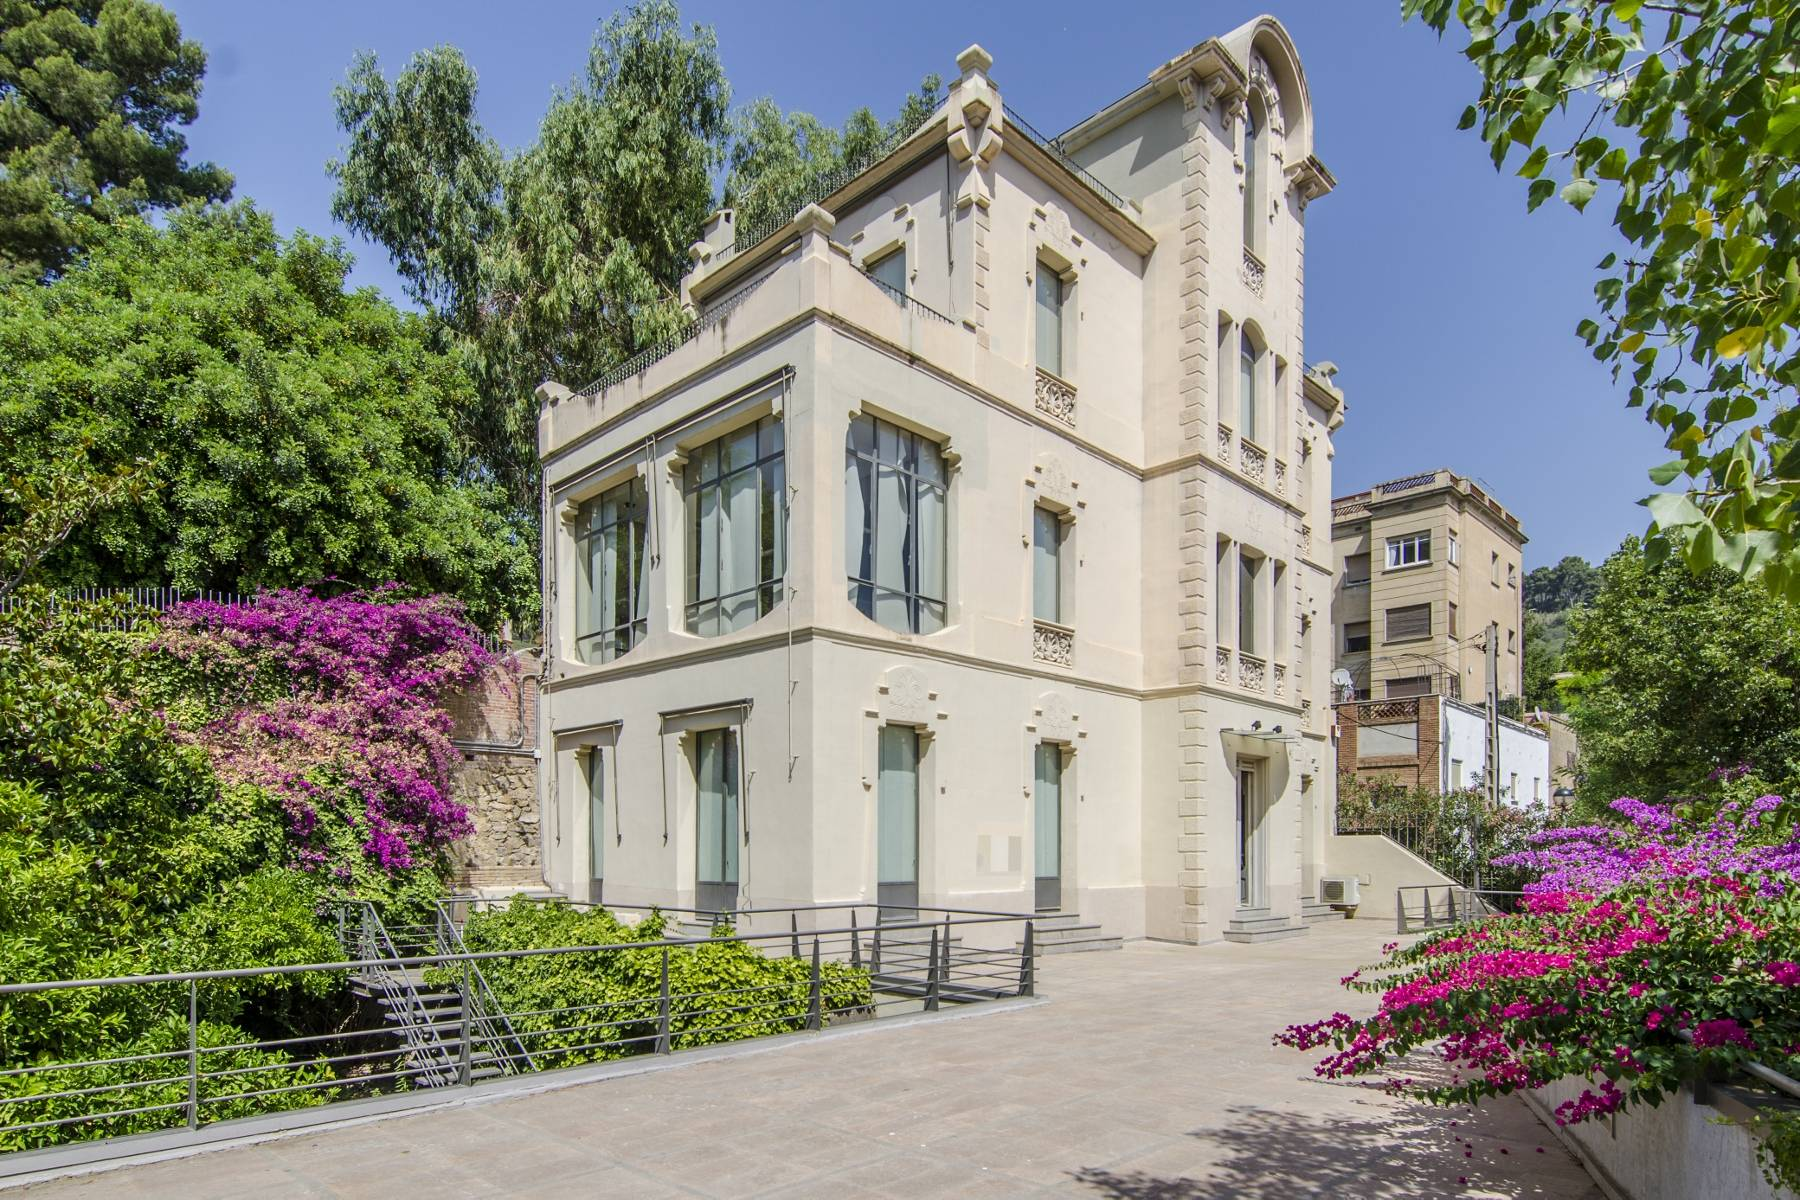 一戸建て のために 売買 アット Modernist House in the Area of Avenida Tibidabo Barcelona City, Barcelona, 08034 スペイン